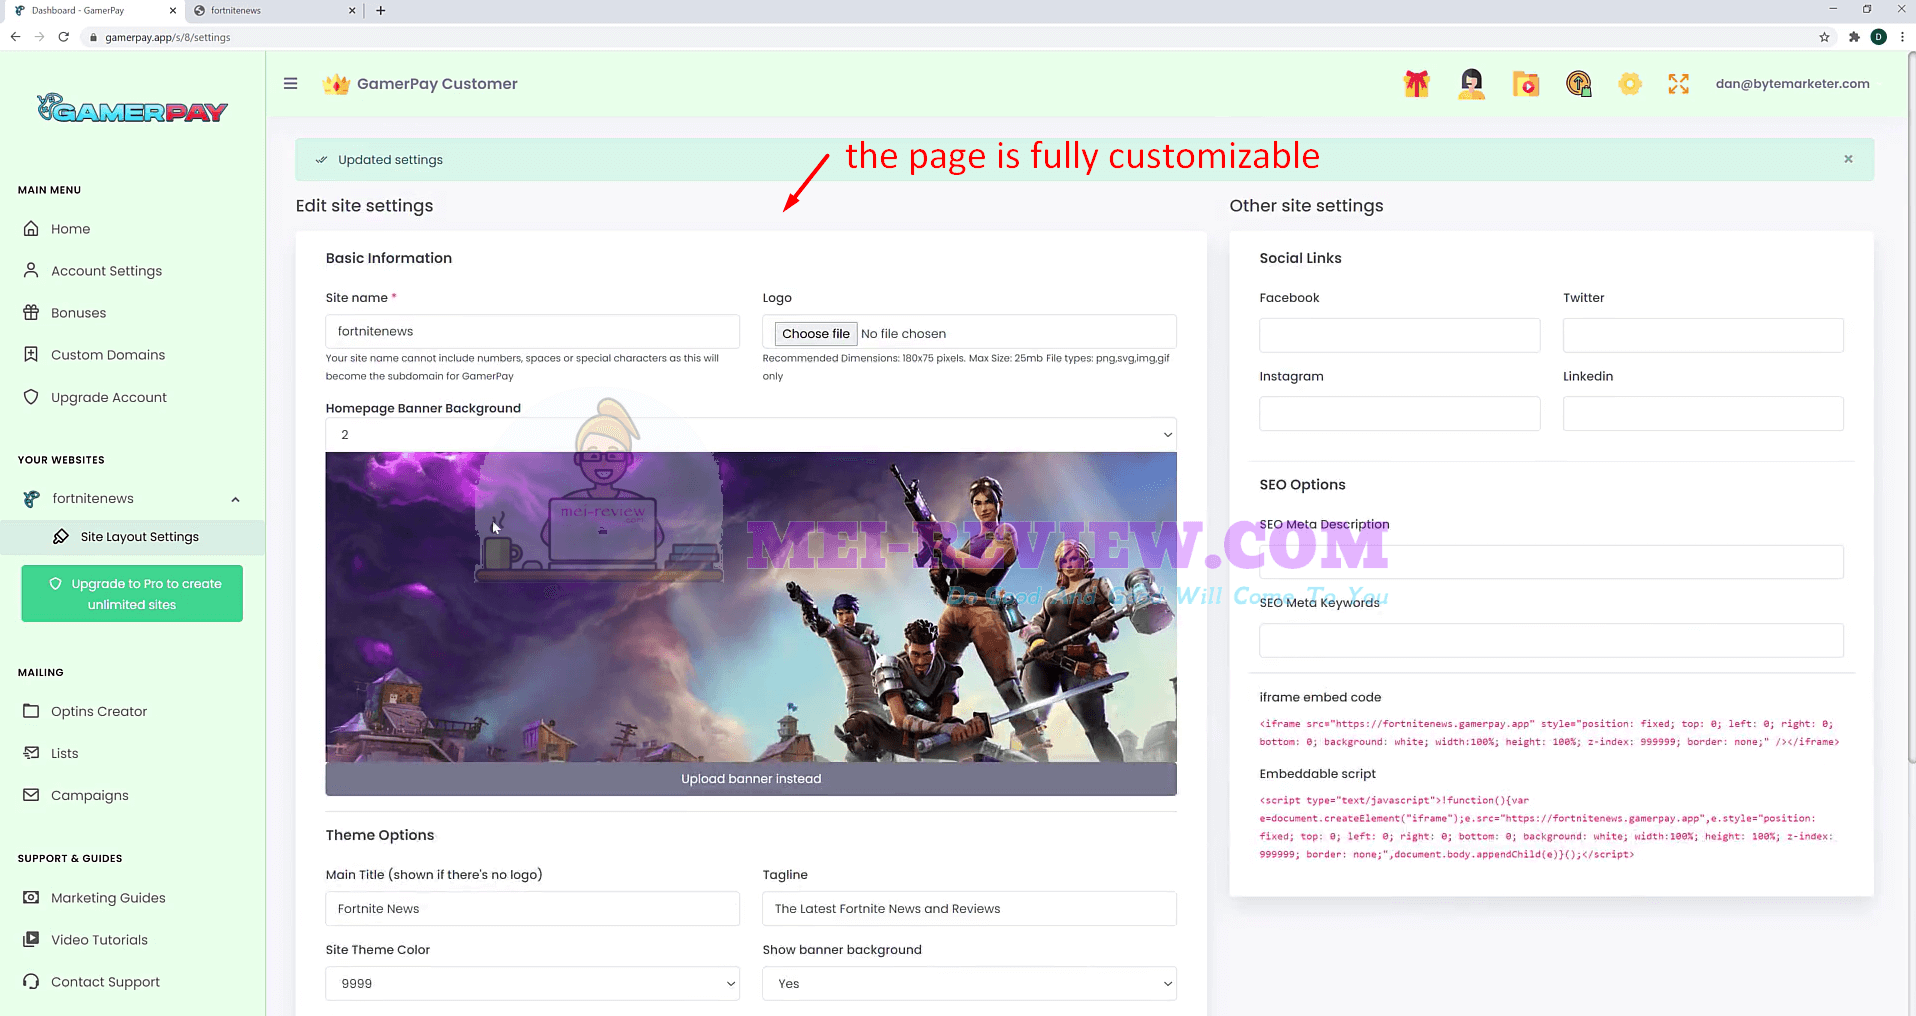 Gamerpay-Demo-7-customize-page